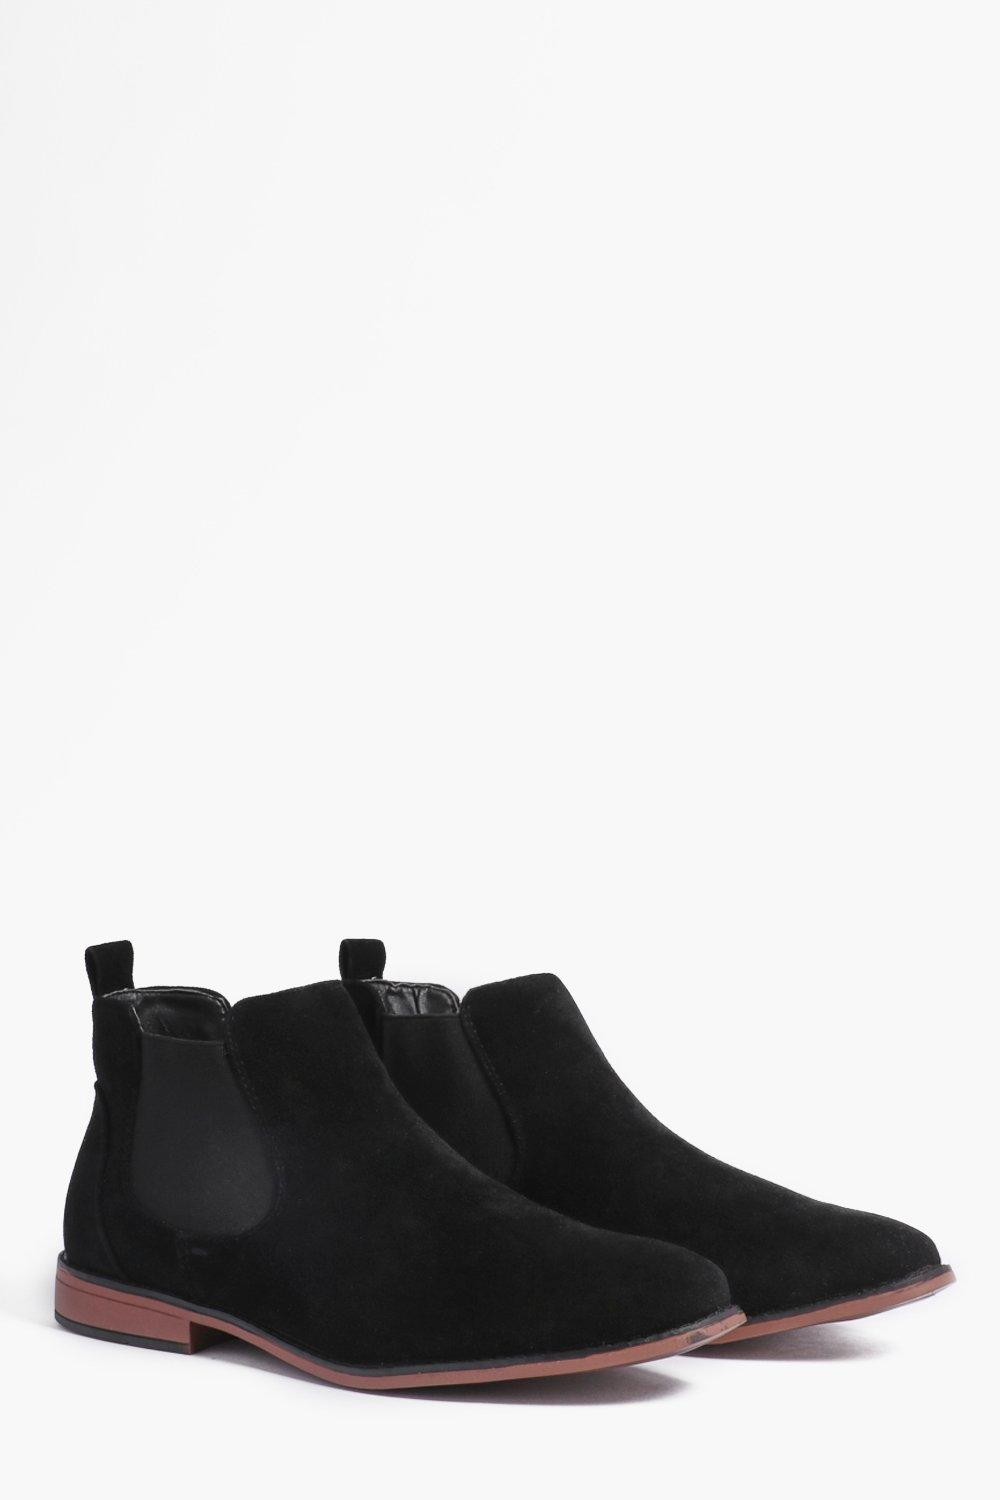 wholesale sales strong packing buying cheap Faux Suede Chelsea Boots | Boohoo